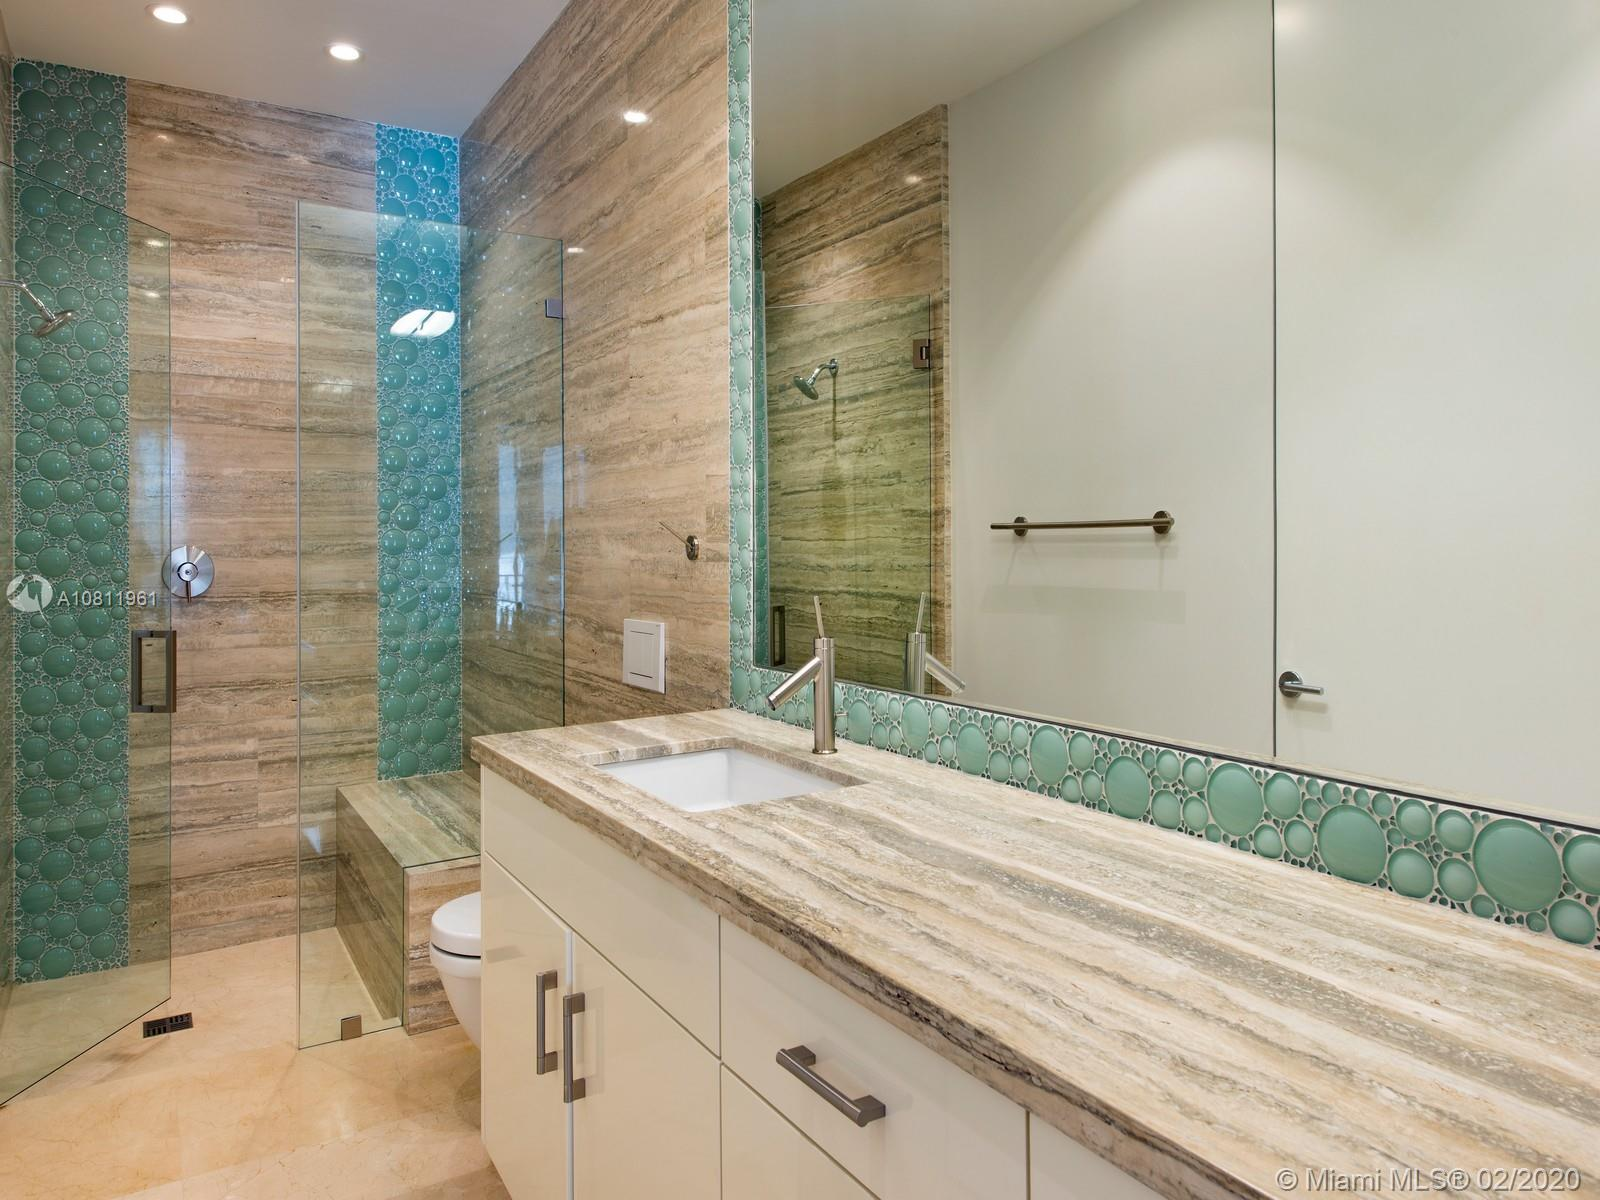 En-suite bathroom with marble countertops and floors.